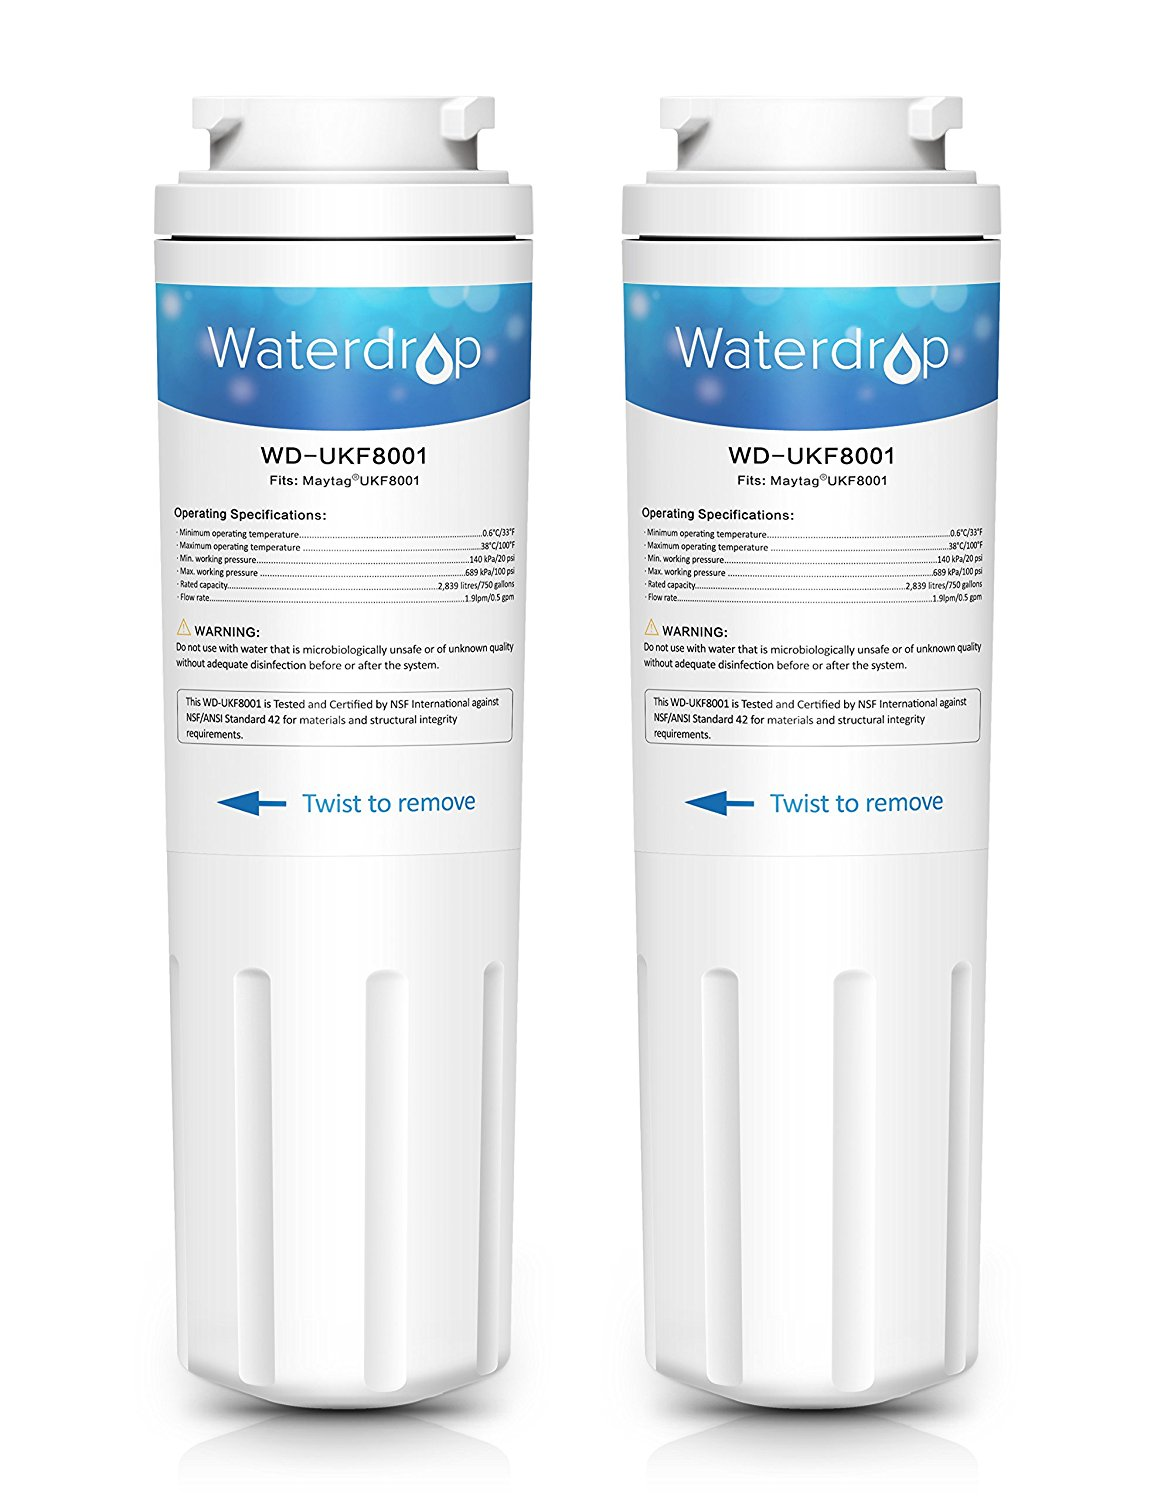 2 Pack Waterdrop UKF8001 Replacement for PUR, Jenn-Air, Maytag UKF8001, UKF8001AXX, UKF8001P, EDR4RXD1, Whirlpool 4396395, Puriclean II, 469006 Refrigerator Water Filter